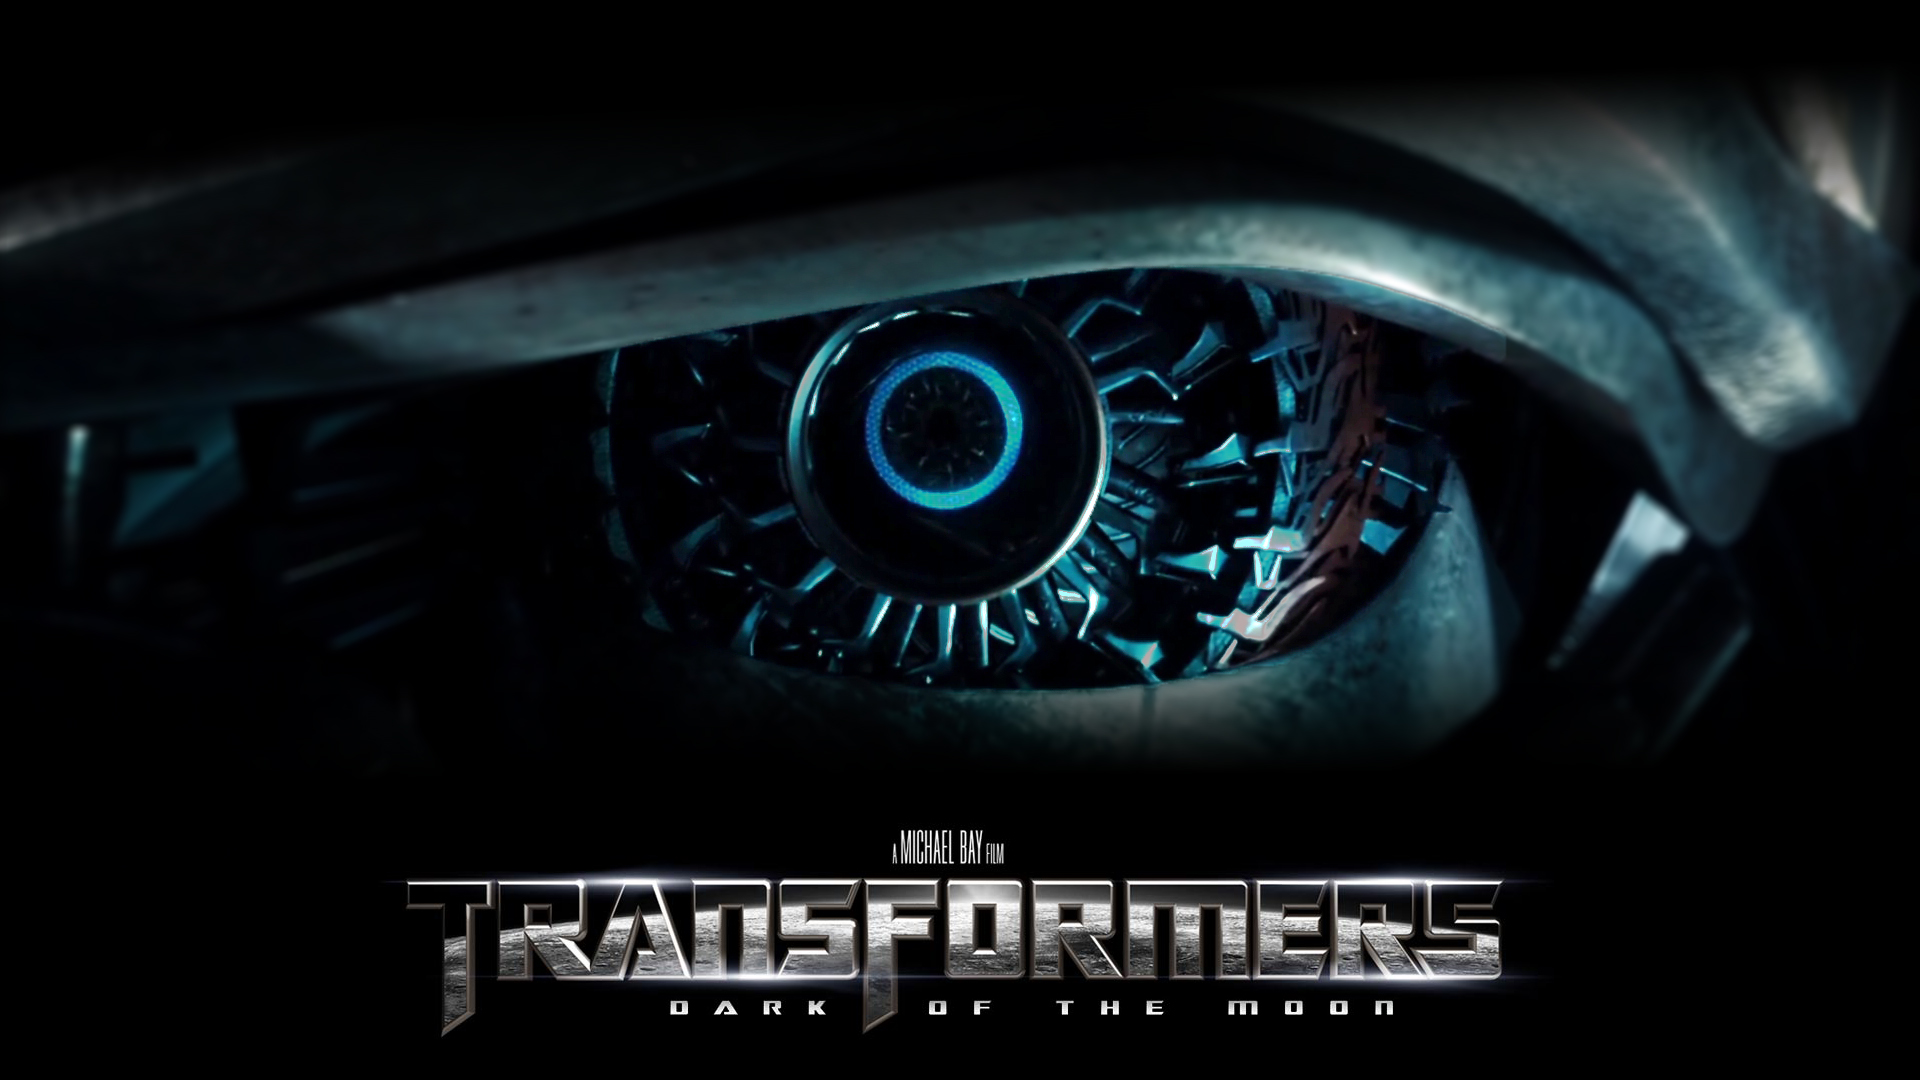 Transformers 5 Hd Wallpapers 1080p Download 45 Hd Transformer Wallpapers Backgrounds For Free Download